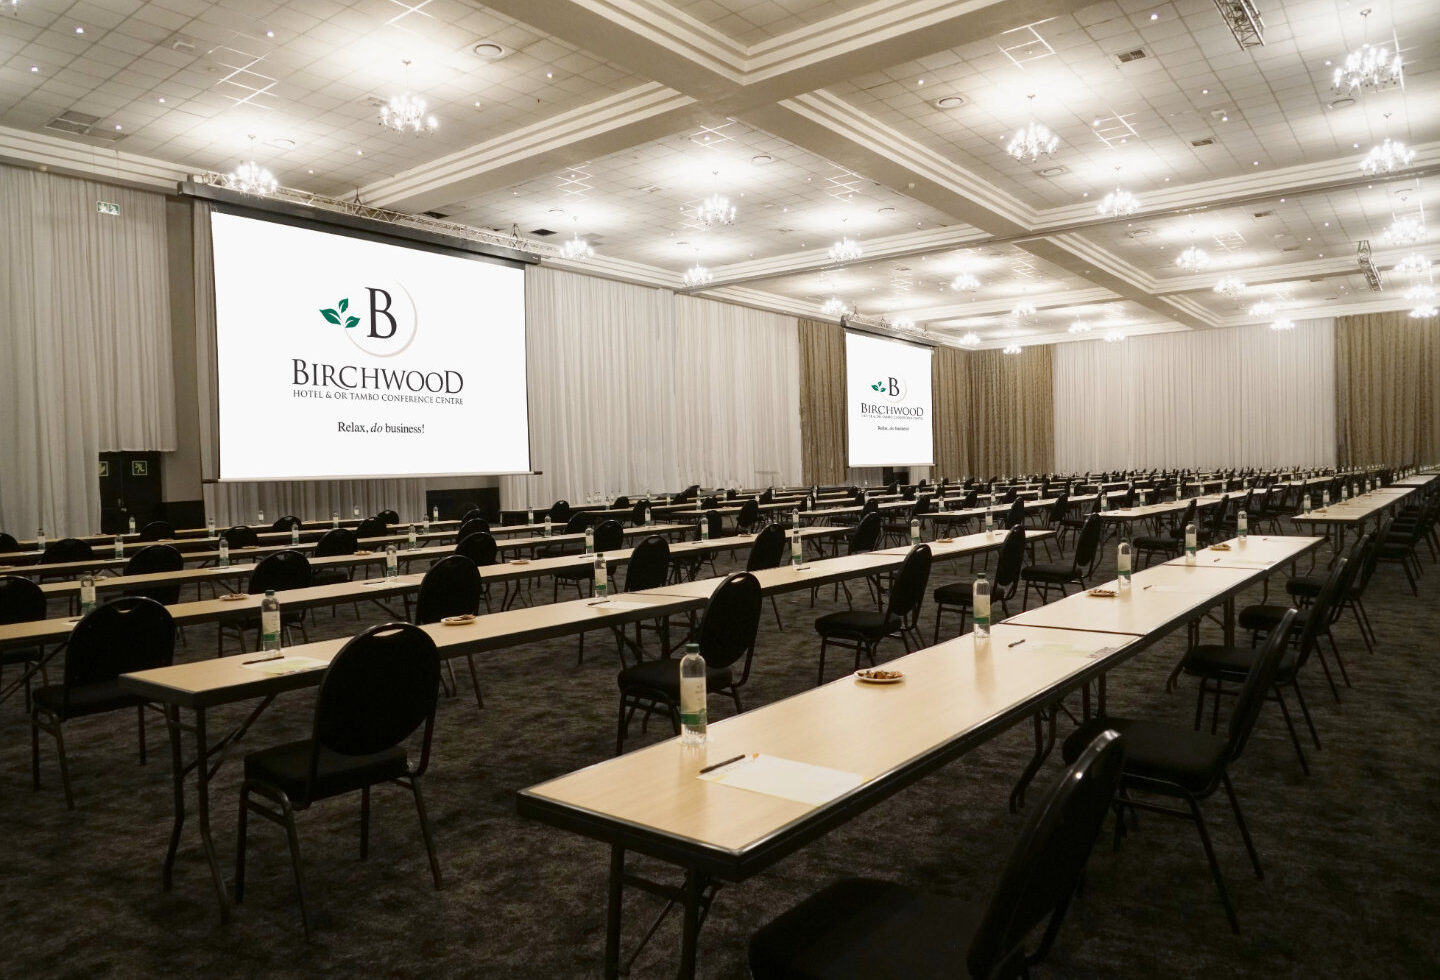 Large Conference Venue with Social Distancing Seating